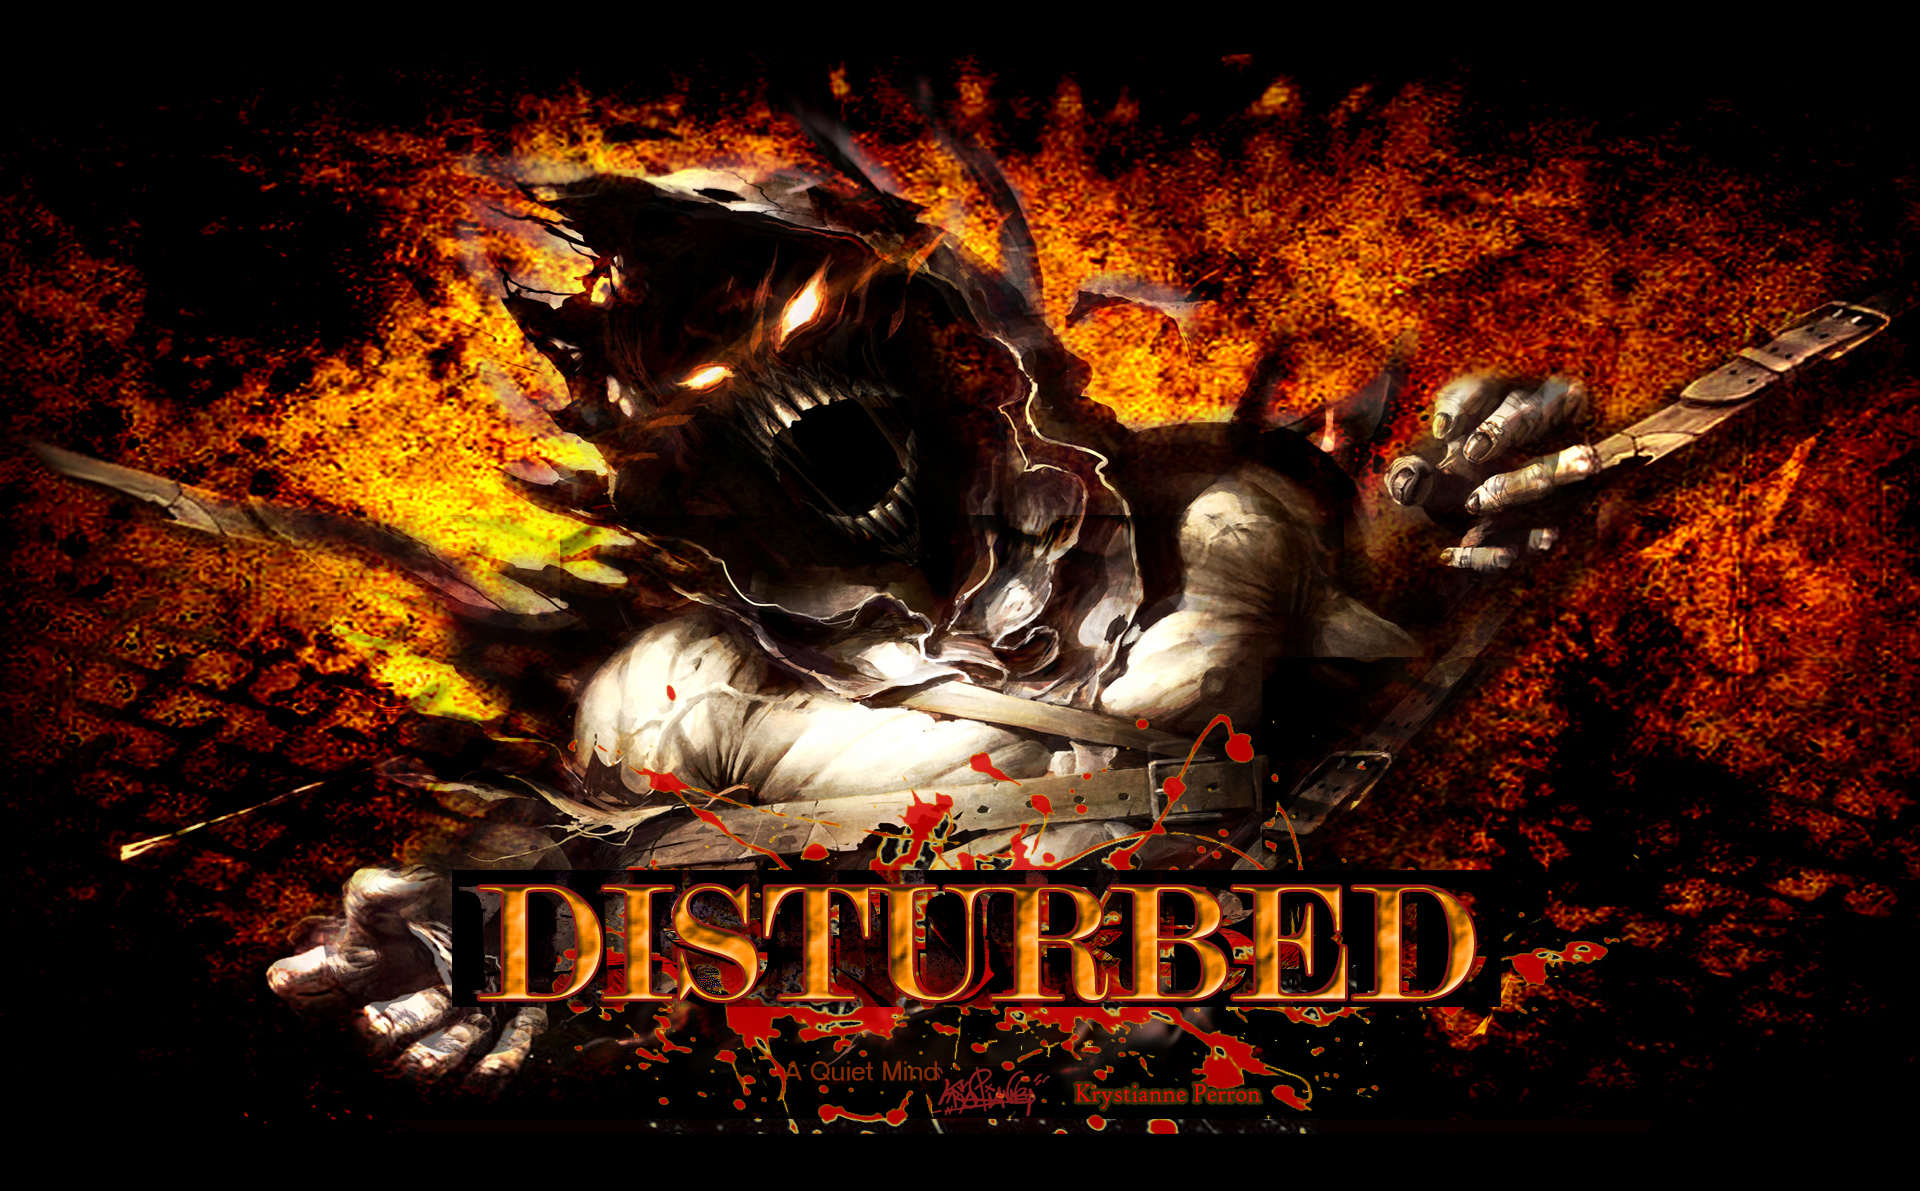 DISTURBED WALLPAPERS FREE Wallpapers Background images 1920x1191